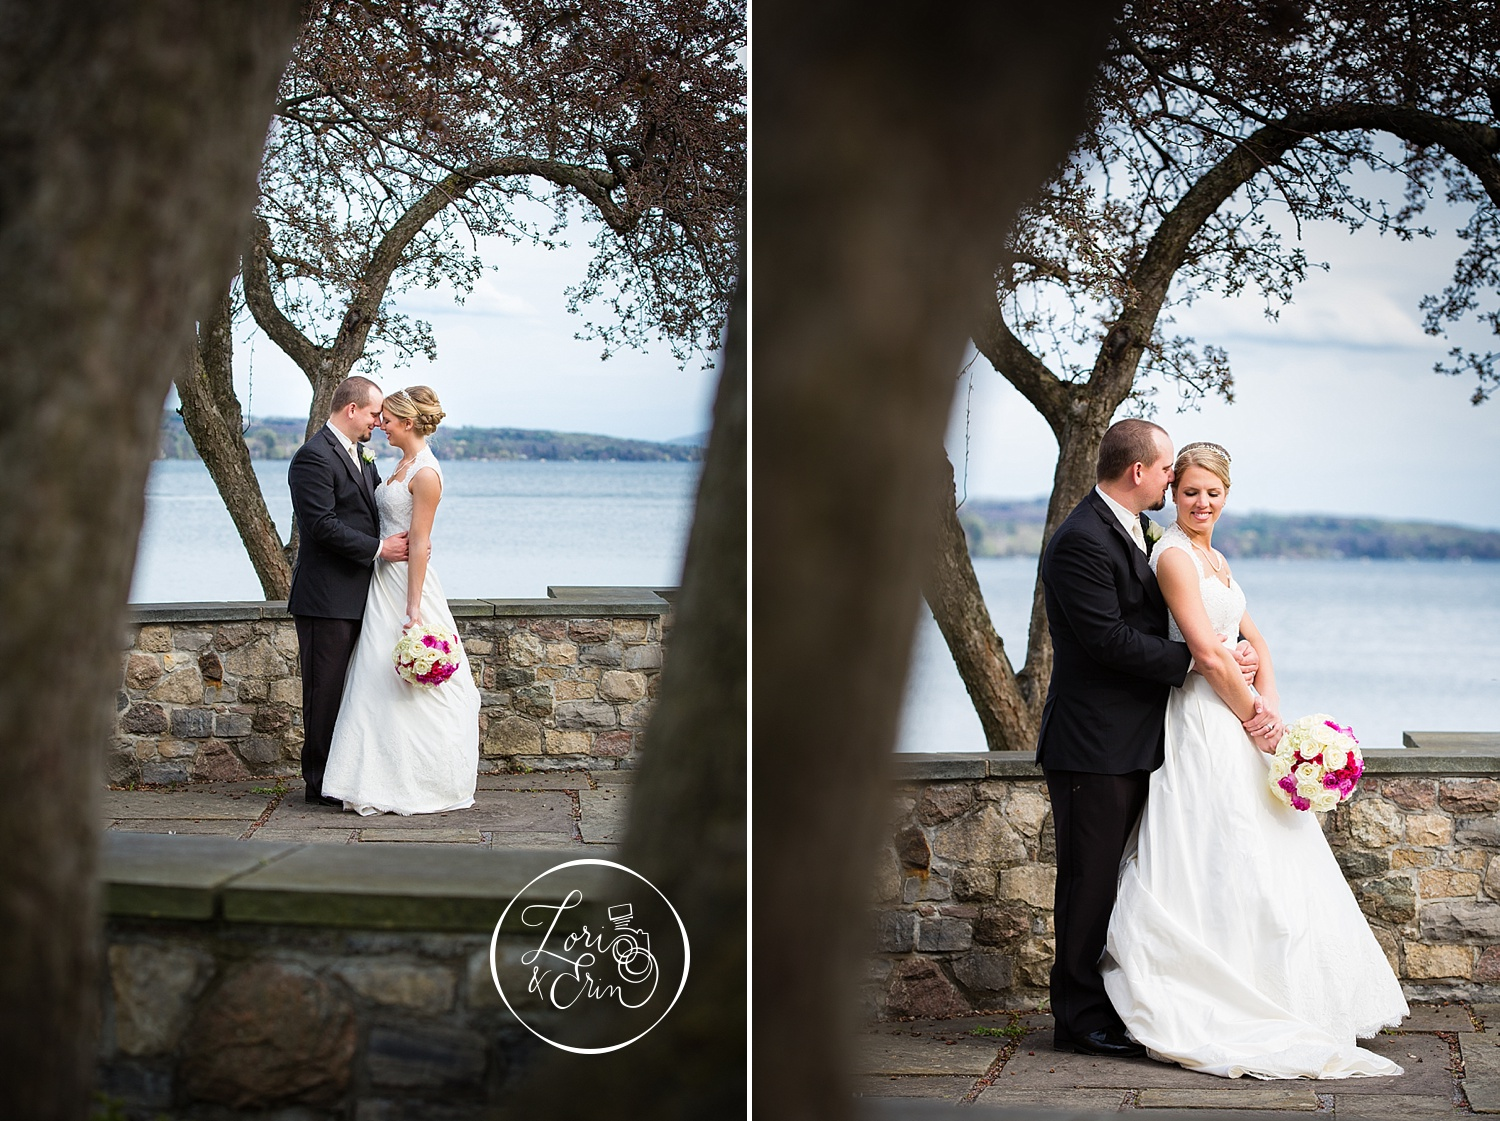 "Left: We LOVE this picture. The angle/place in which the picture was taken shows yet again, the level of creativity Lori and Erin have in capturing such special occasions and moments! This picture we used as our ""Thank You"" card photo and it received A LOT of compliments!"